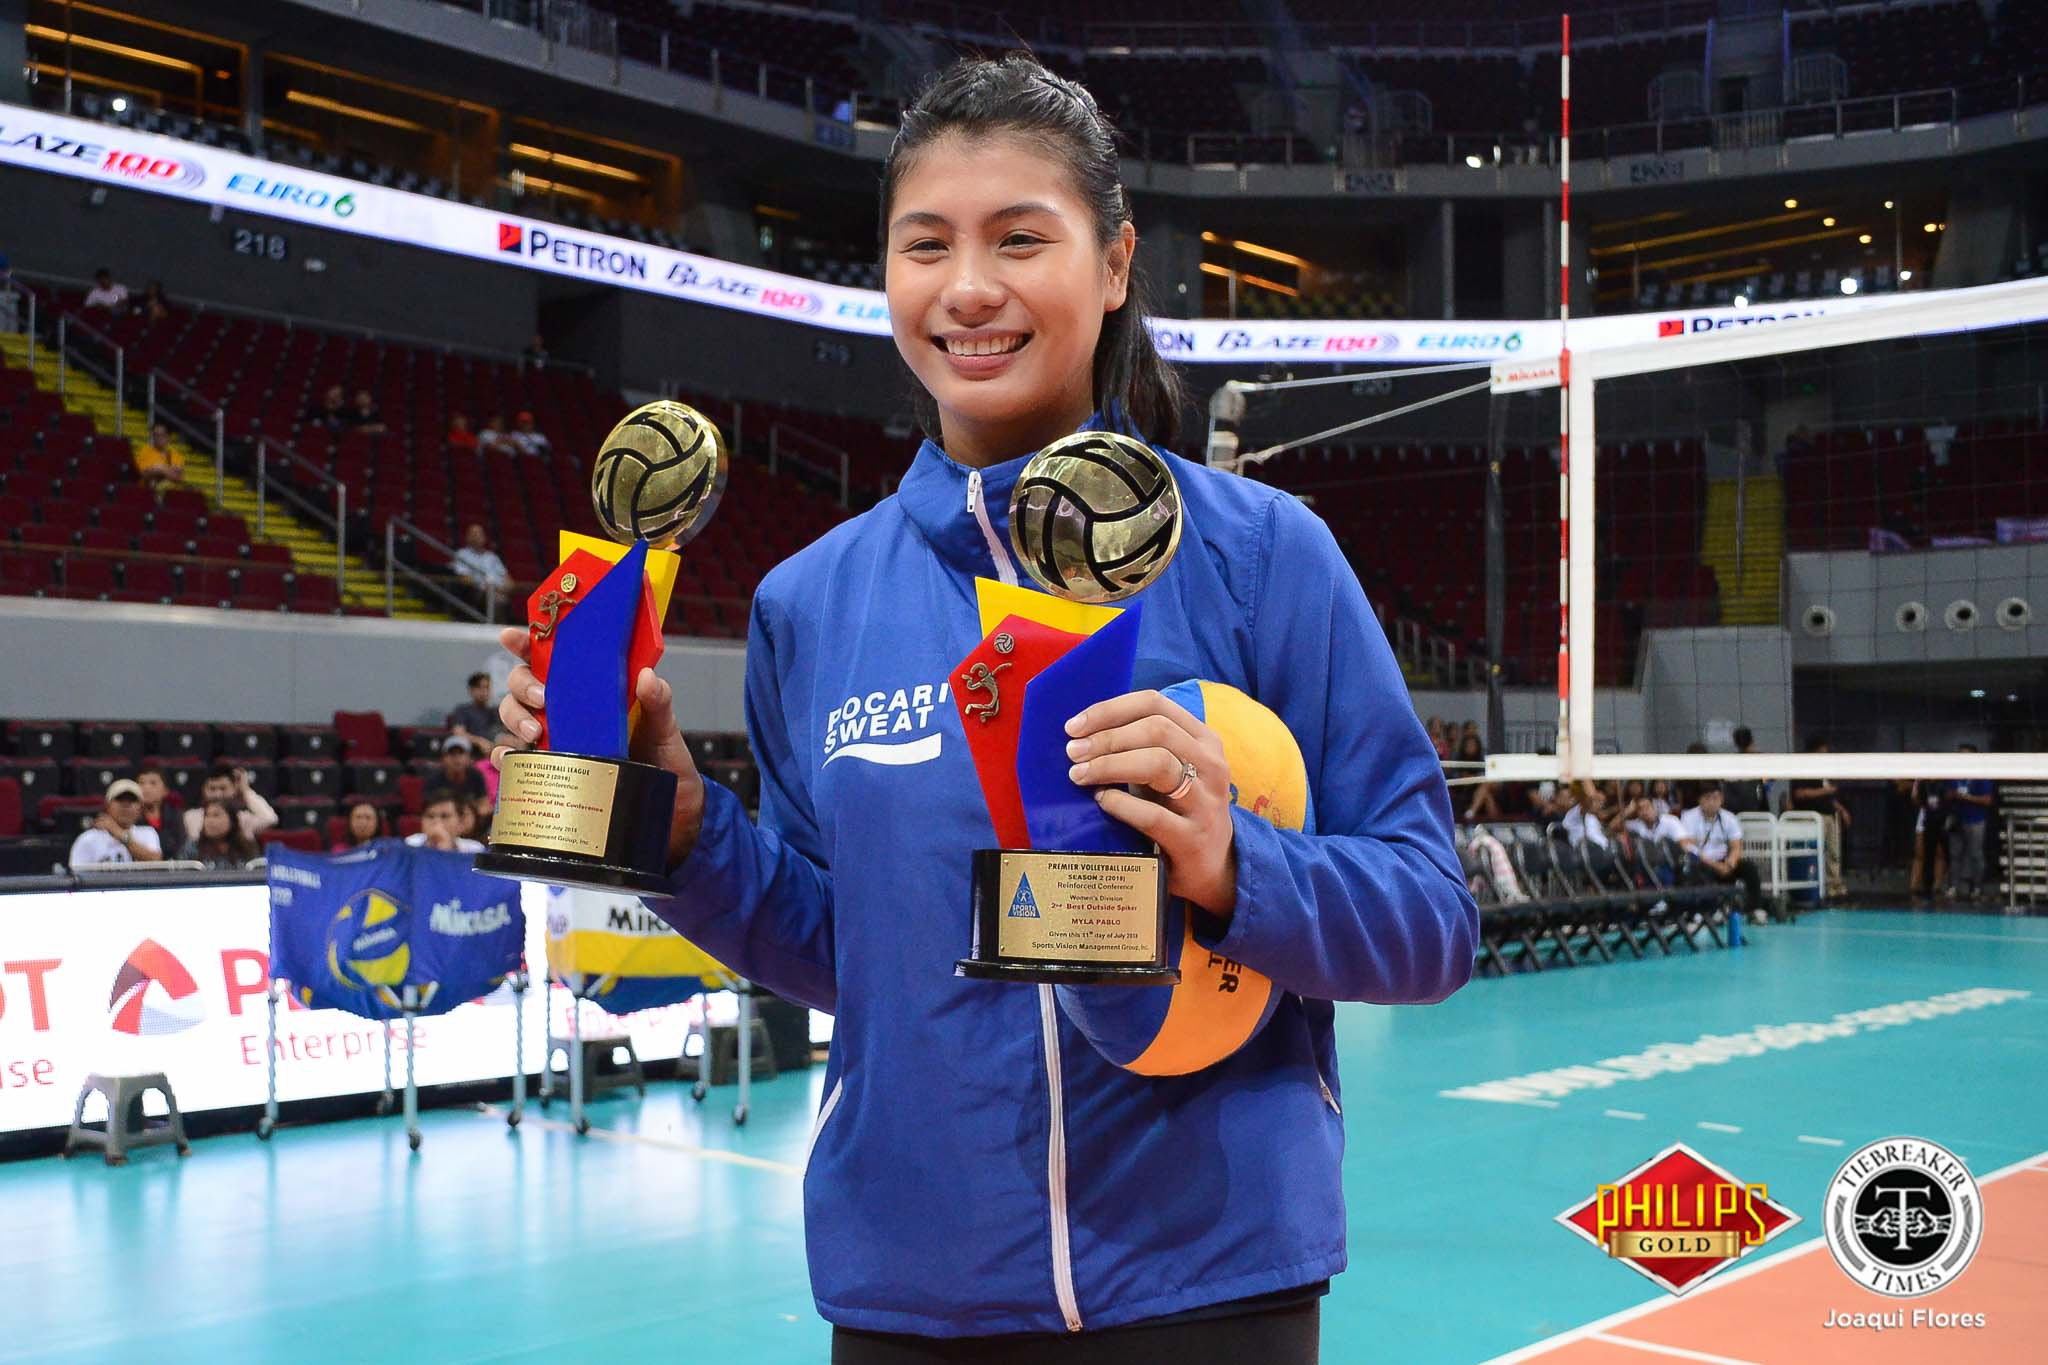 PVL-Reinforced-Awarding-Pablo-3022 'Investment' in PVL pays off for Myla Pablo, Grethcel Soltones News PVL Volleyball  - philippine sports news